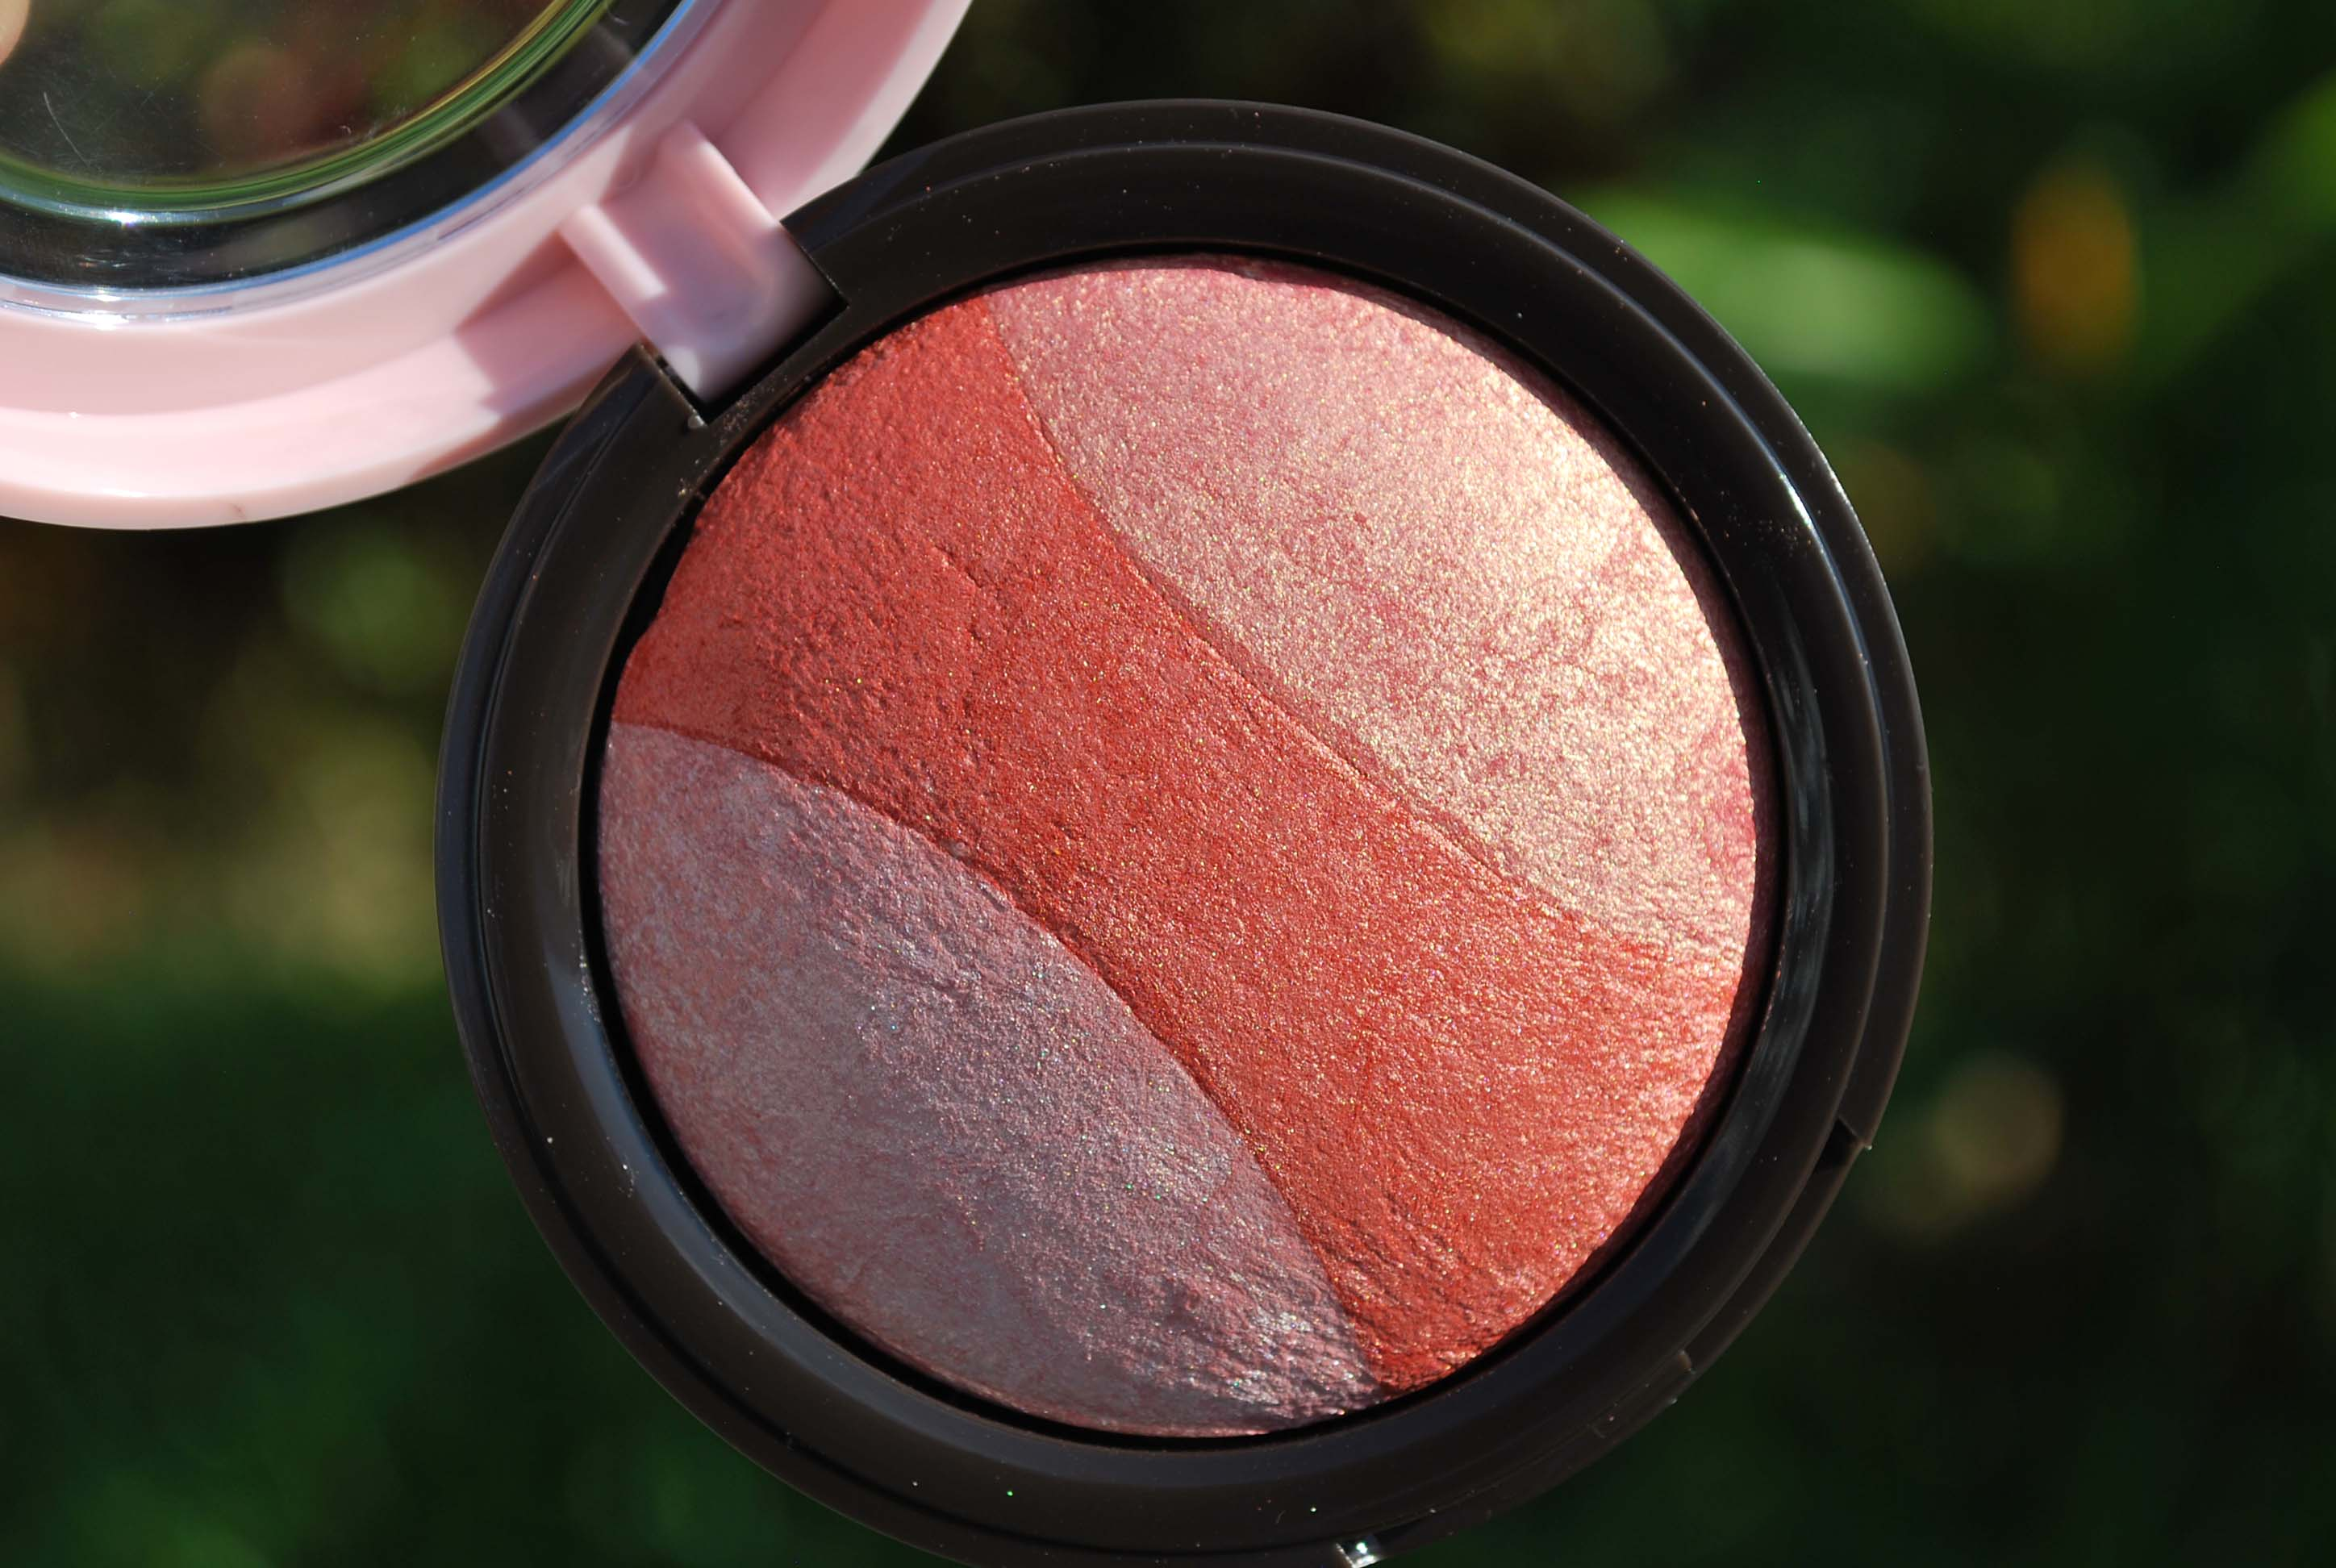 baked blush review odbo thai make up